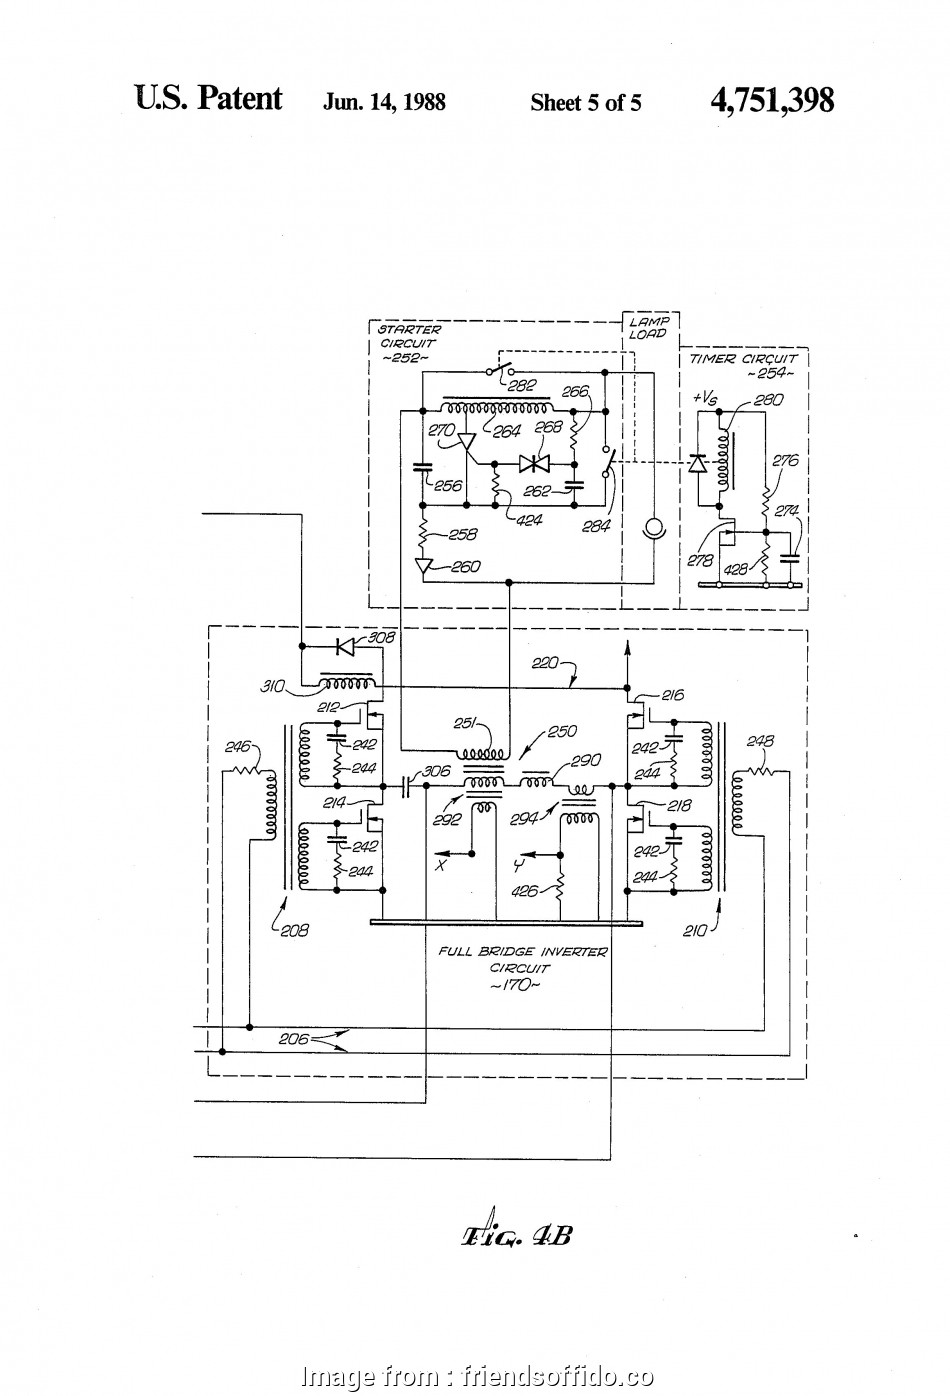 Wiring Diagrams For 4 Lamp T5ho Ballast